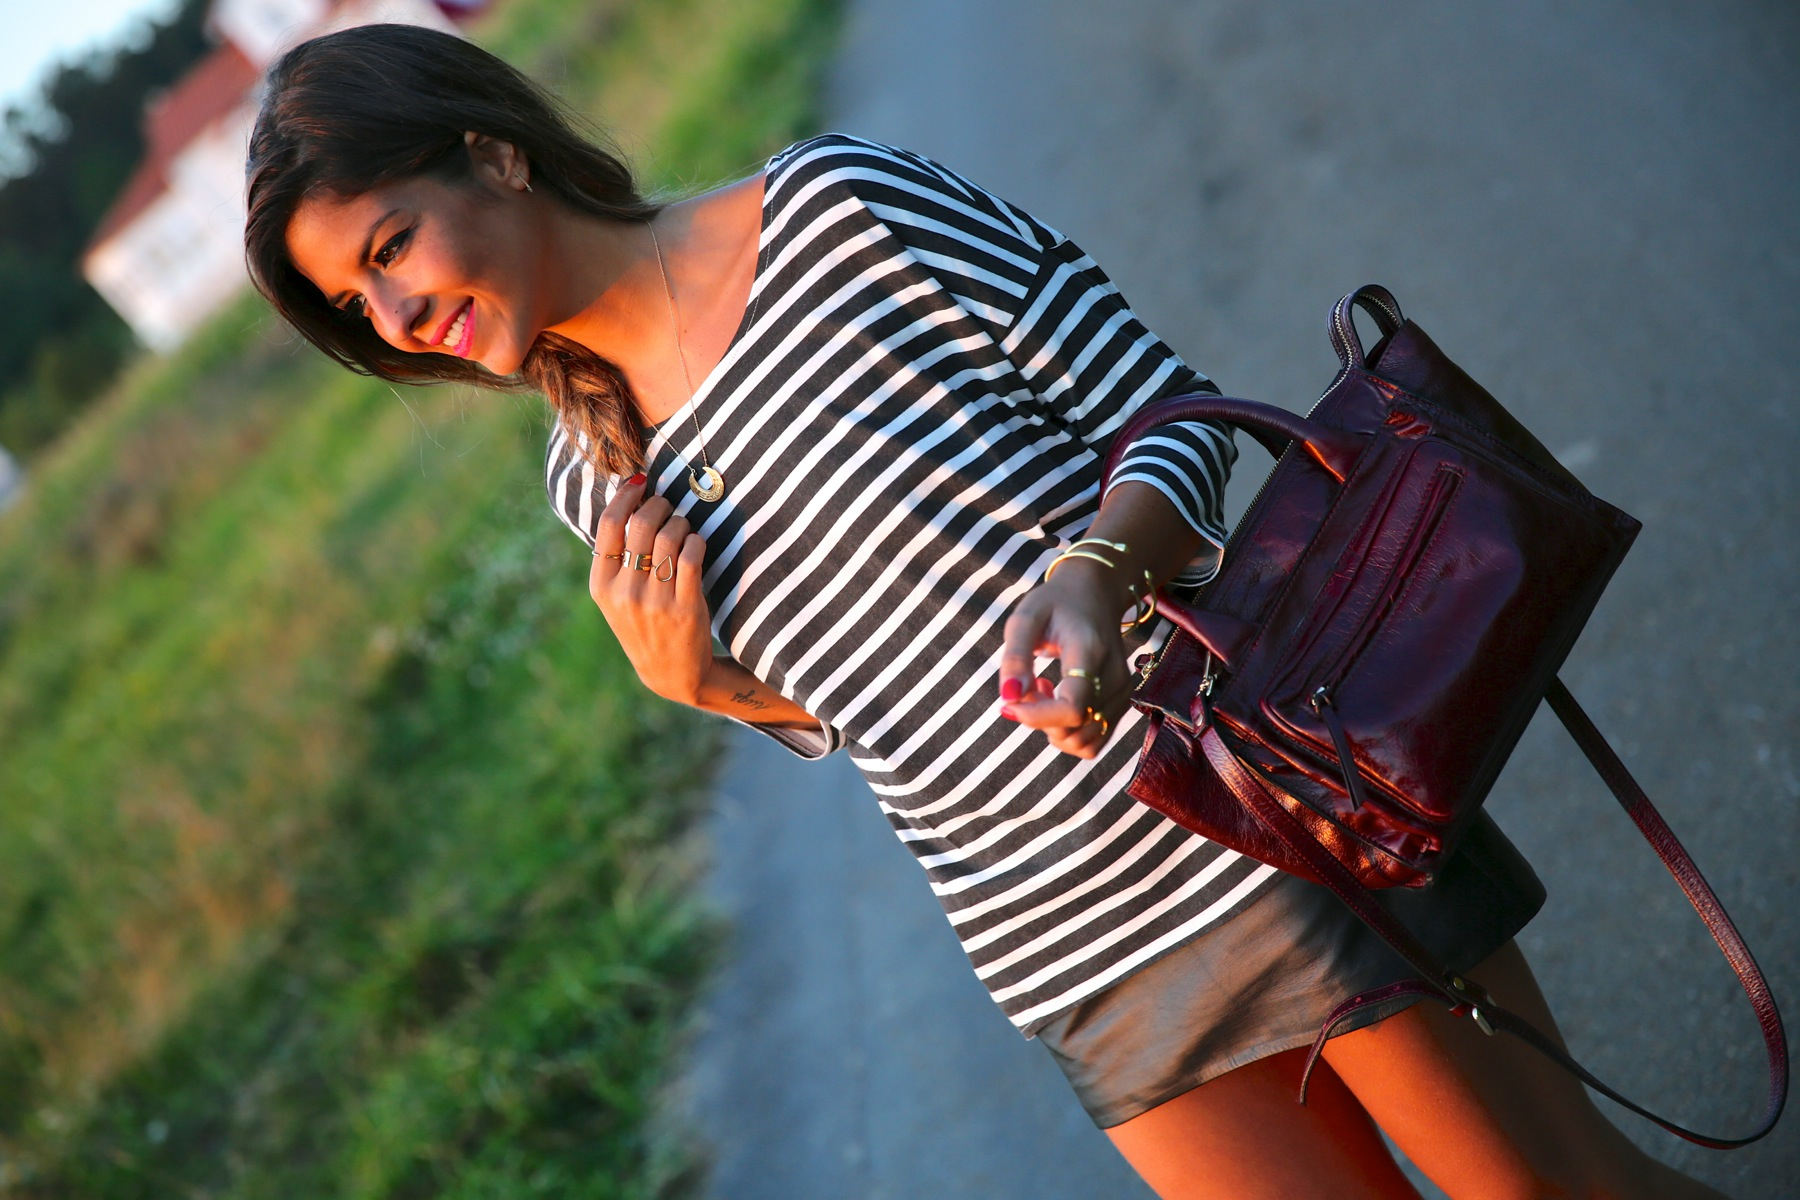 trendy_taste-look-outfit-street_style-ootd-blog-blogger-fashion_spain-moda_españa-girissima-jessica_simpson-chic_place-leo_print-leopardo-burgundy-granate-striped-rayas-3